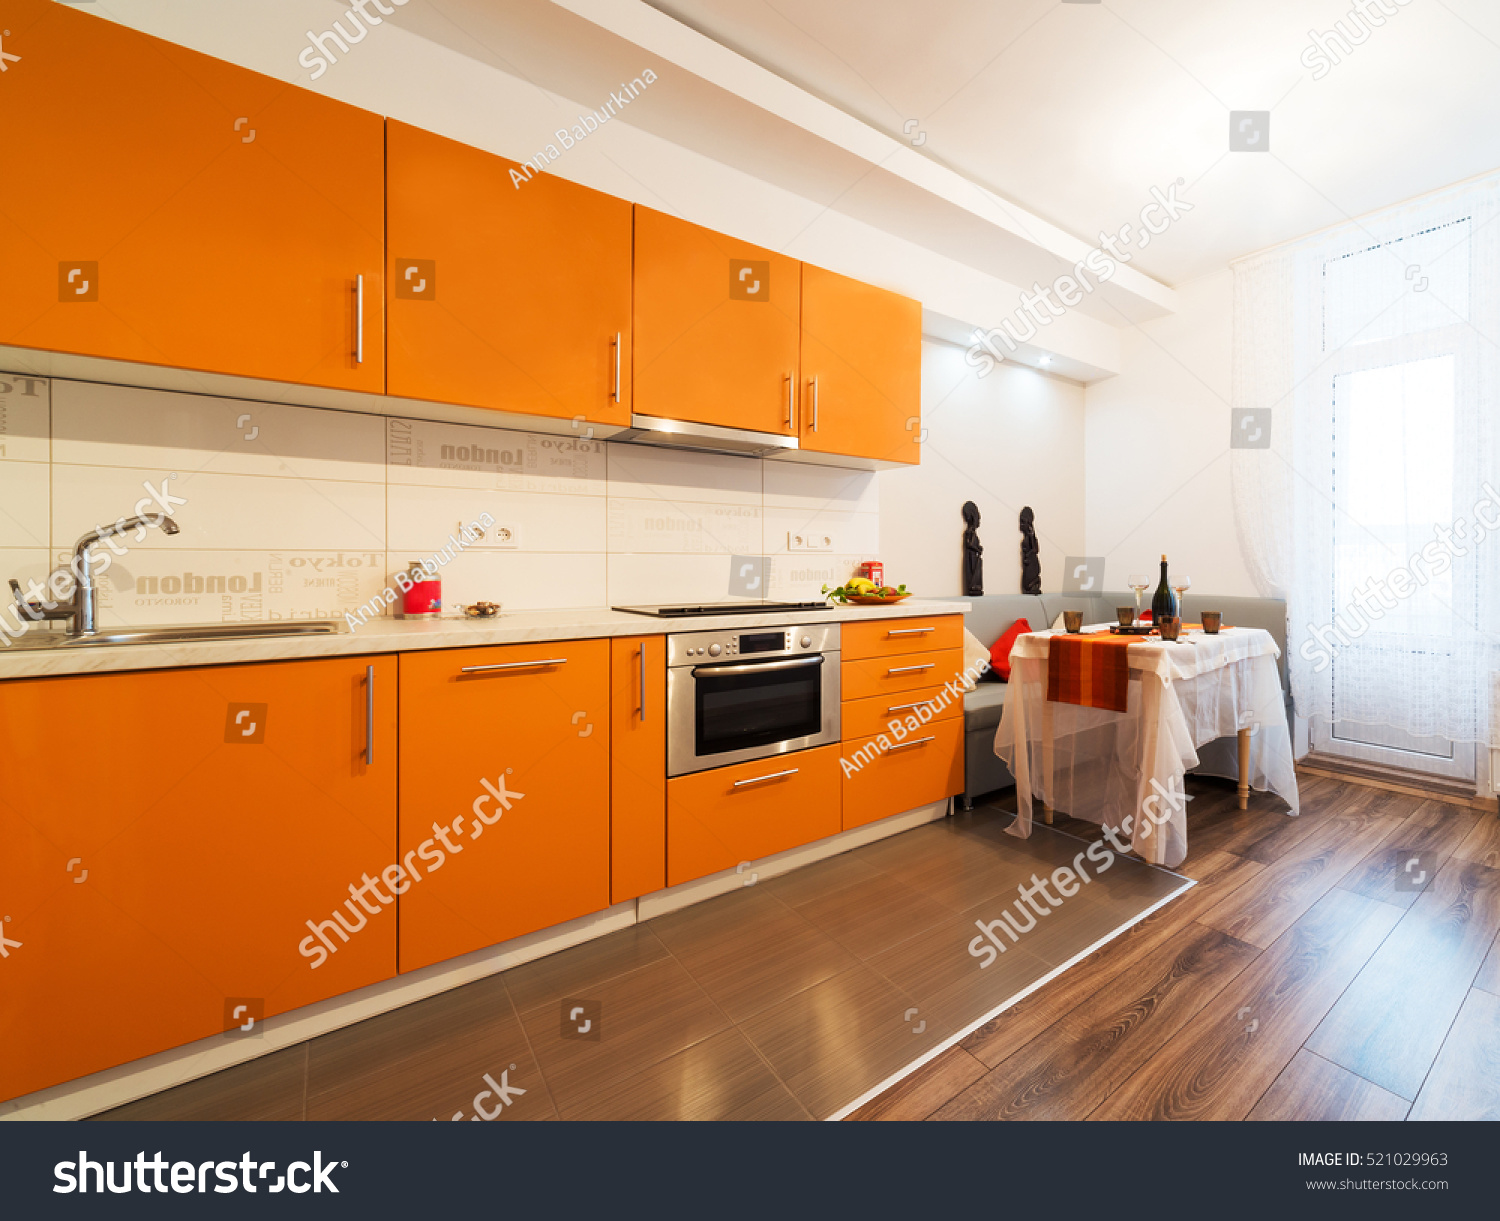 Modern Design Kitchen Orange Elements Stock Photo 521029963 Shutterstock